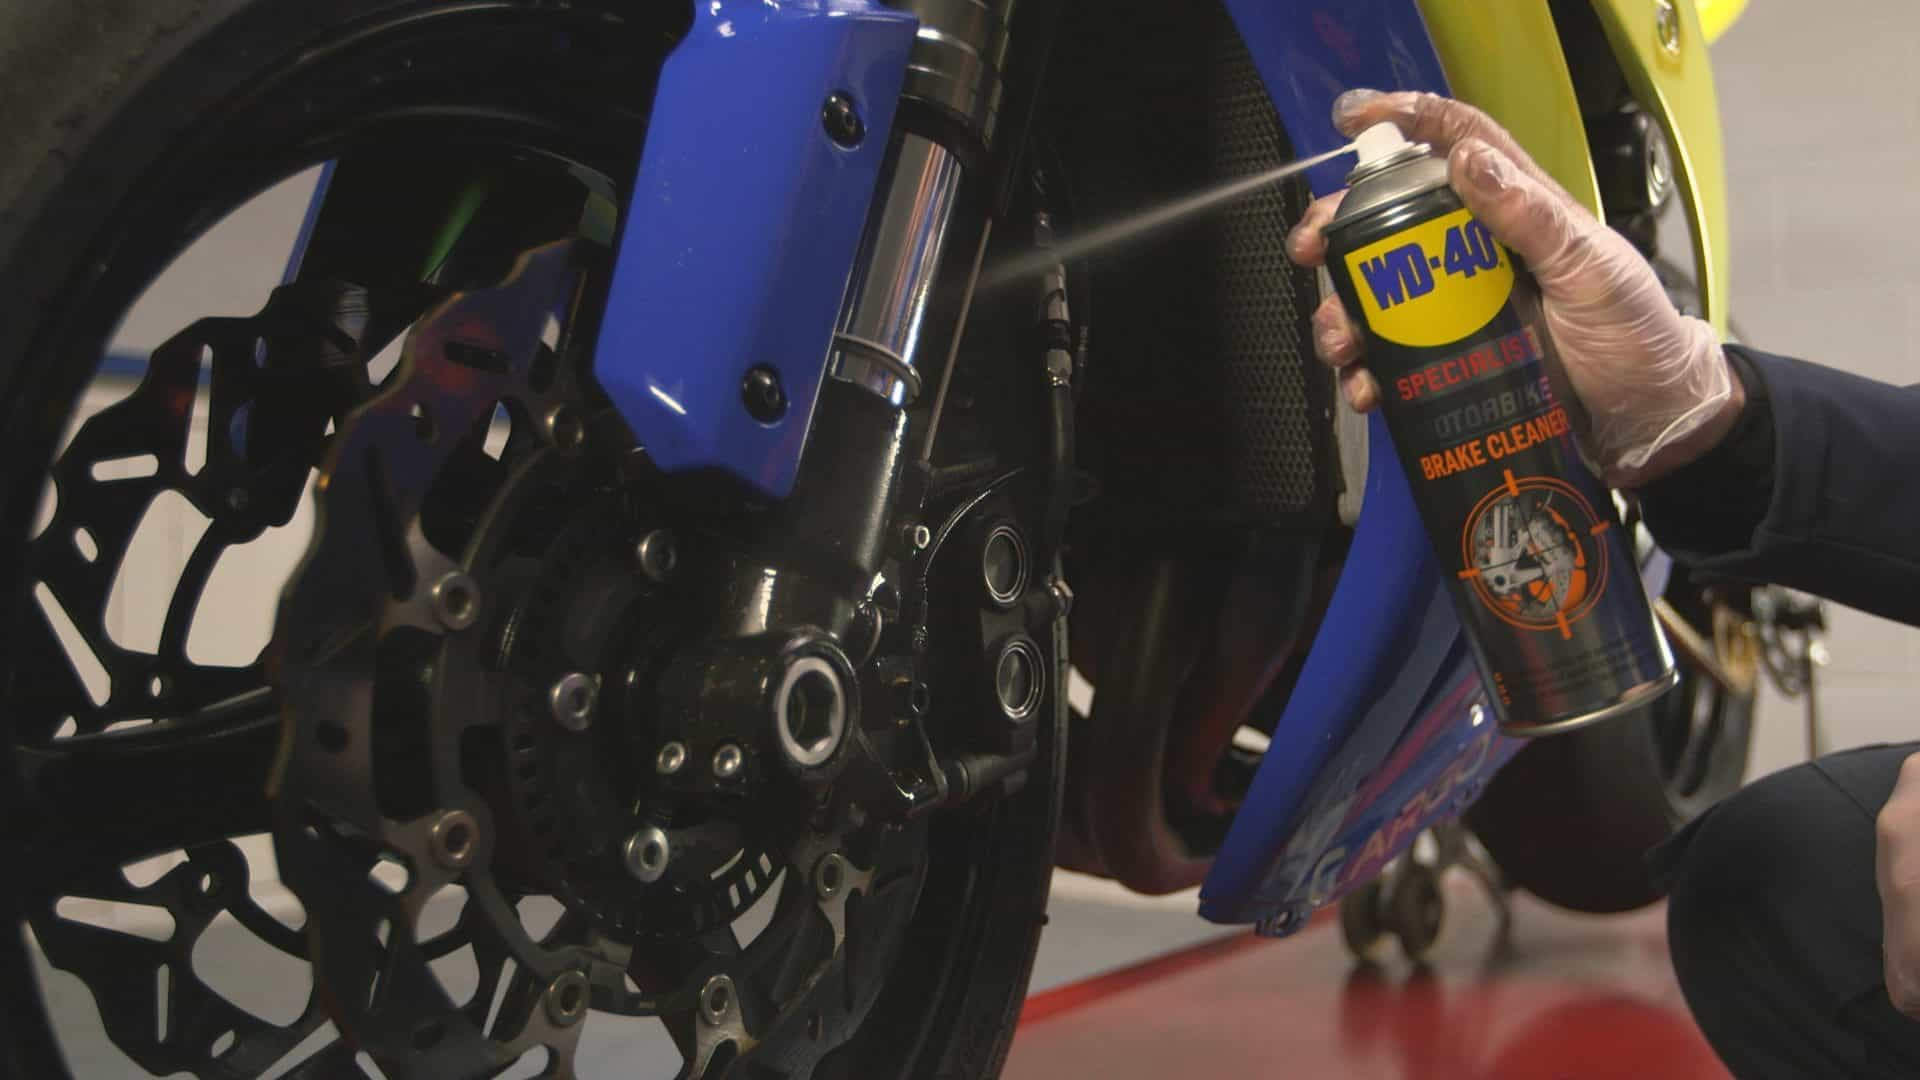 WD-40_SP_MB_Brake_Cleaner_1